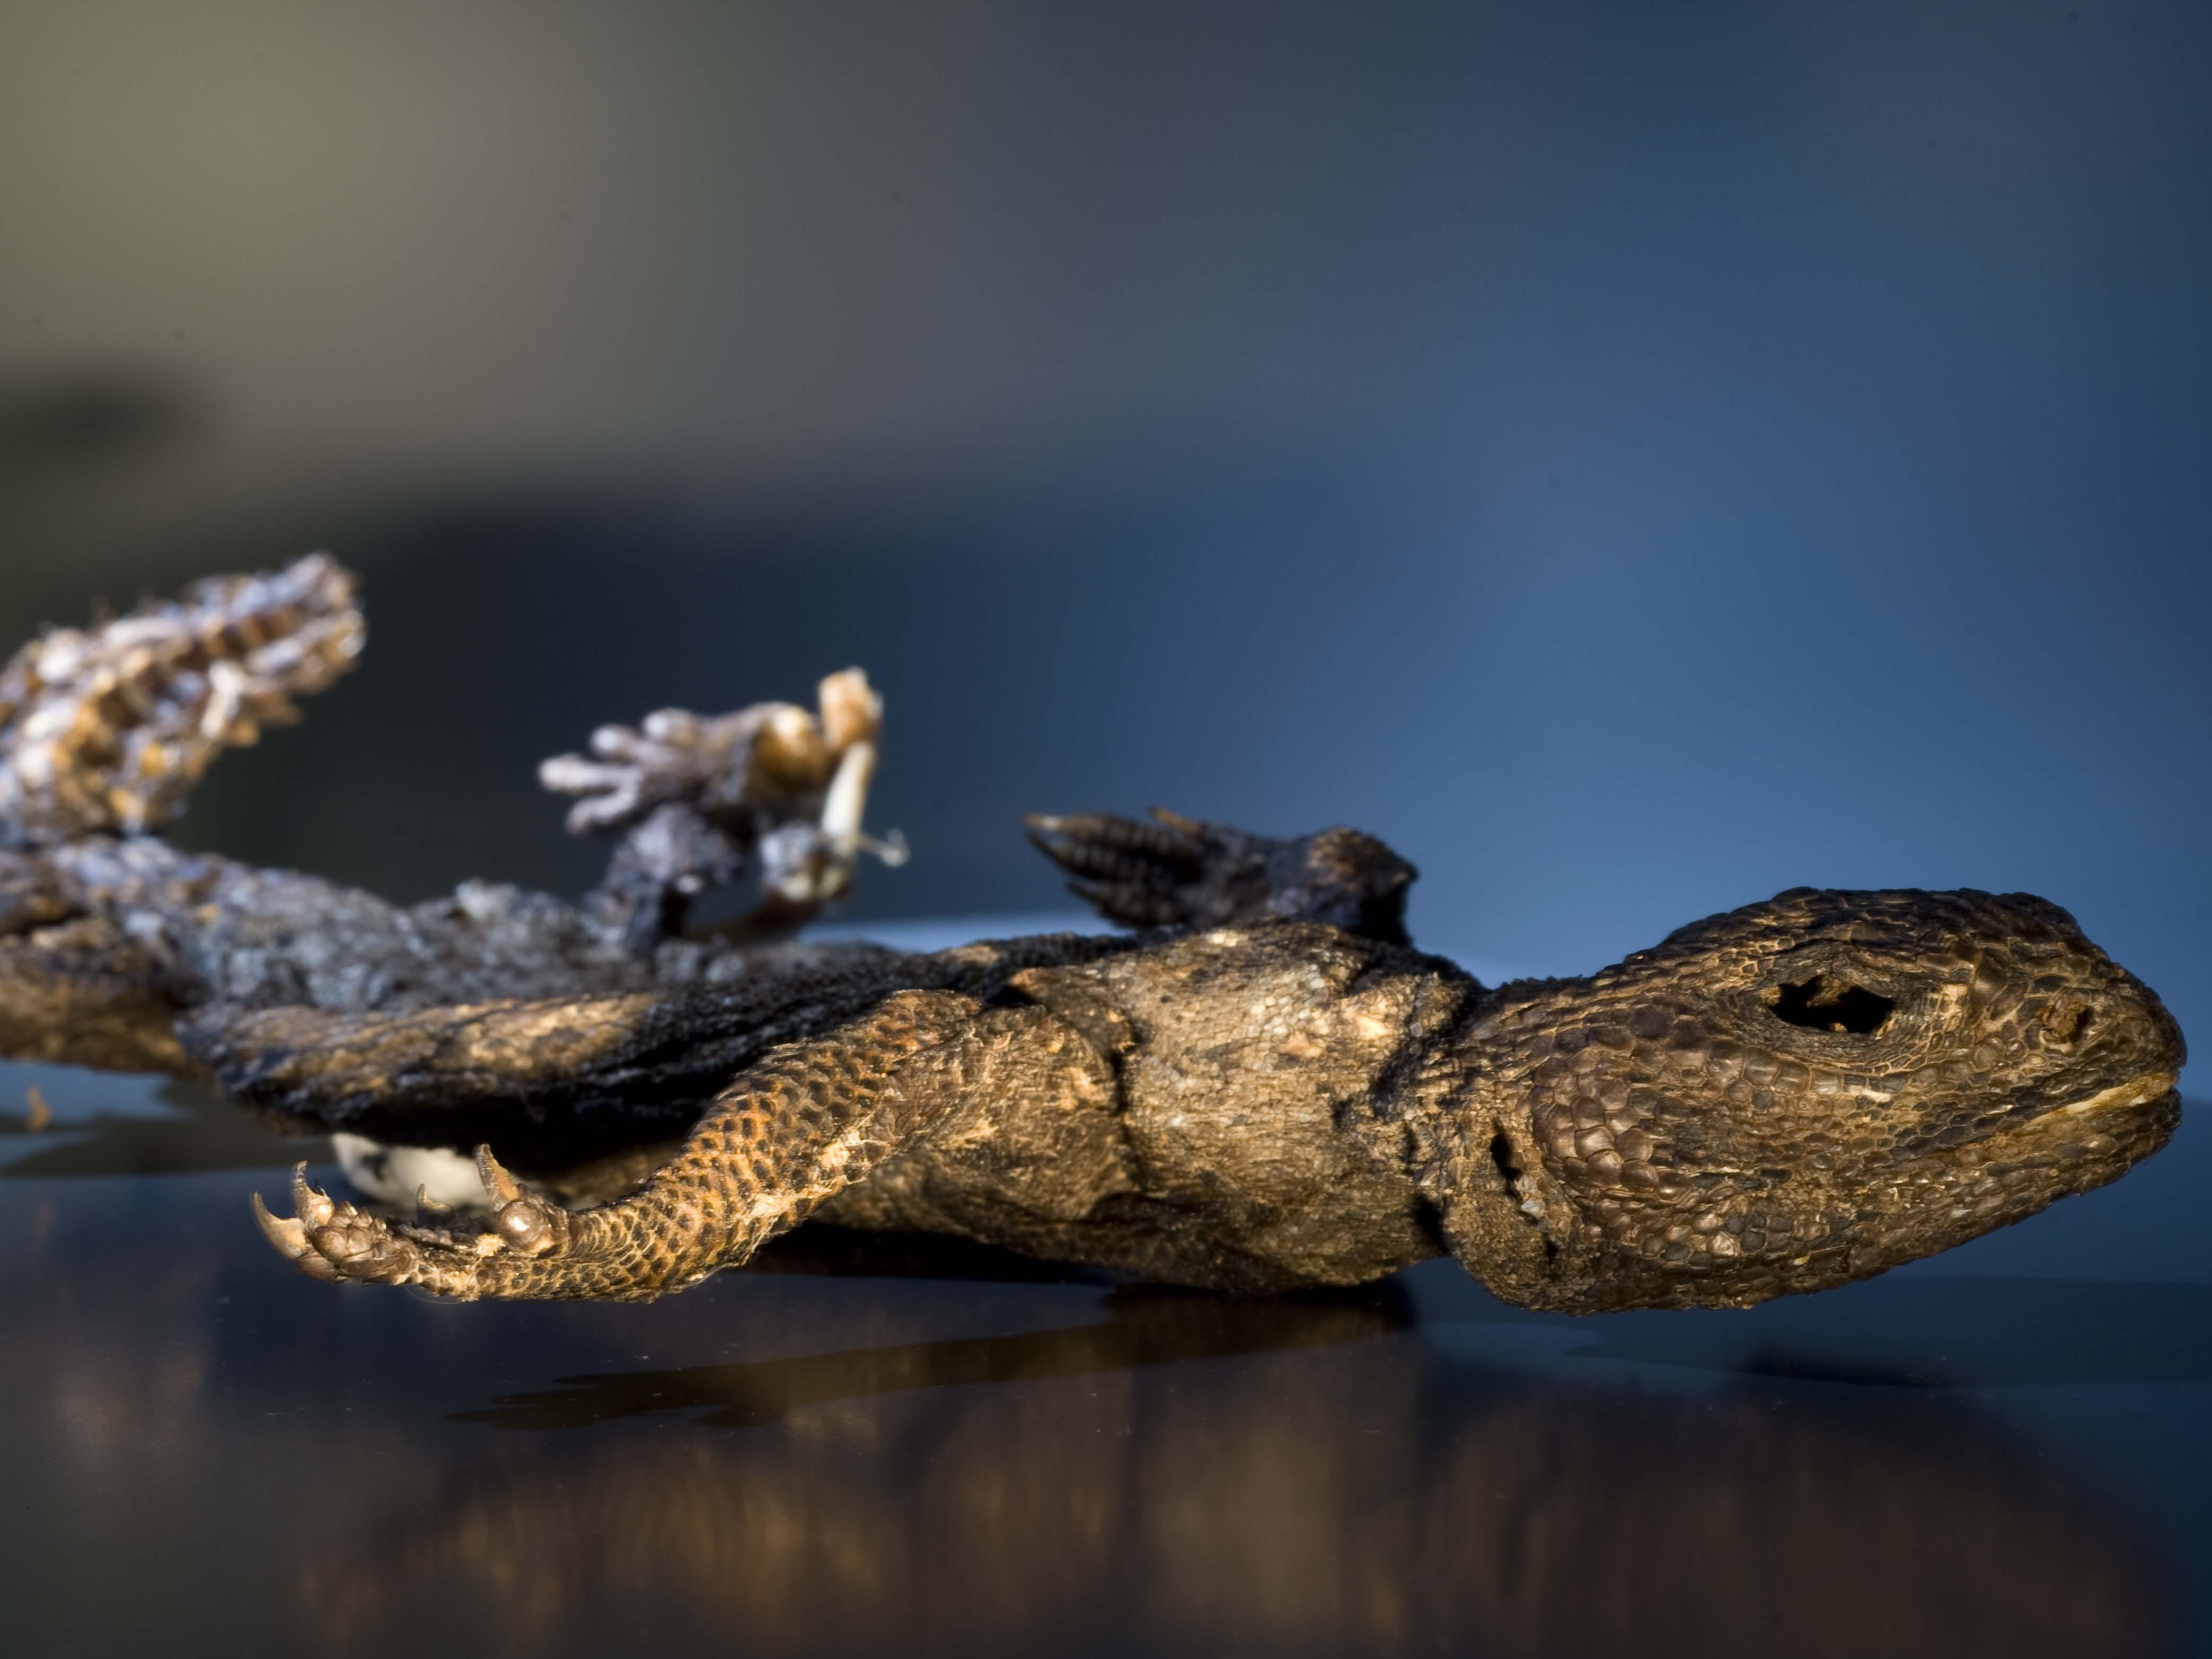 This spiny-tailed lizard from the Sahara Desert is an example of a modern-day mummy and is probably less than 100 years old. It was mummified by the hot, dry air of the desert. This lizard is part of the Mummies of the World: The Exhibition at the Arizona Science Center.